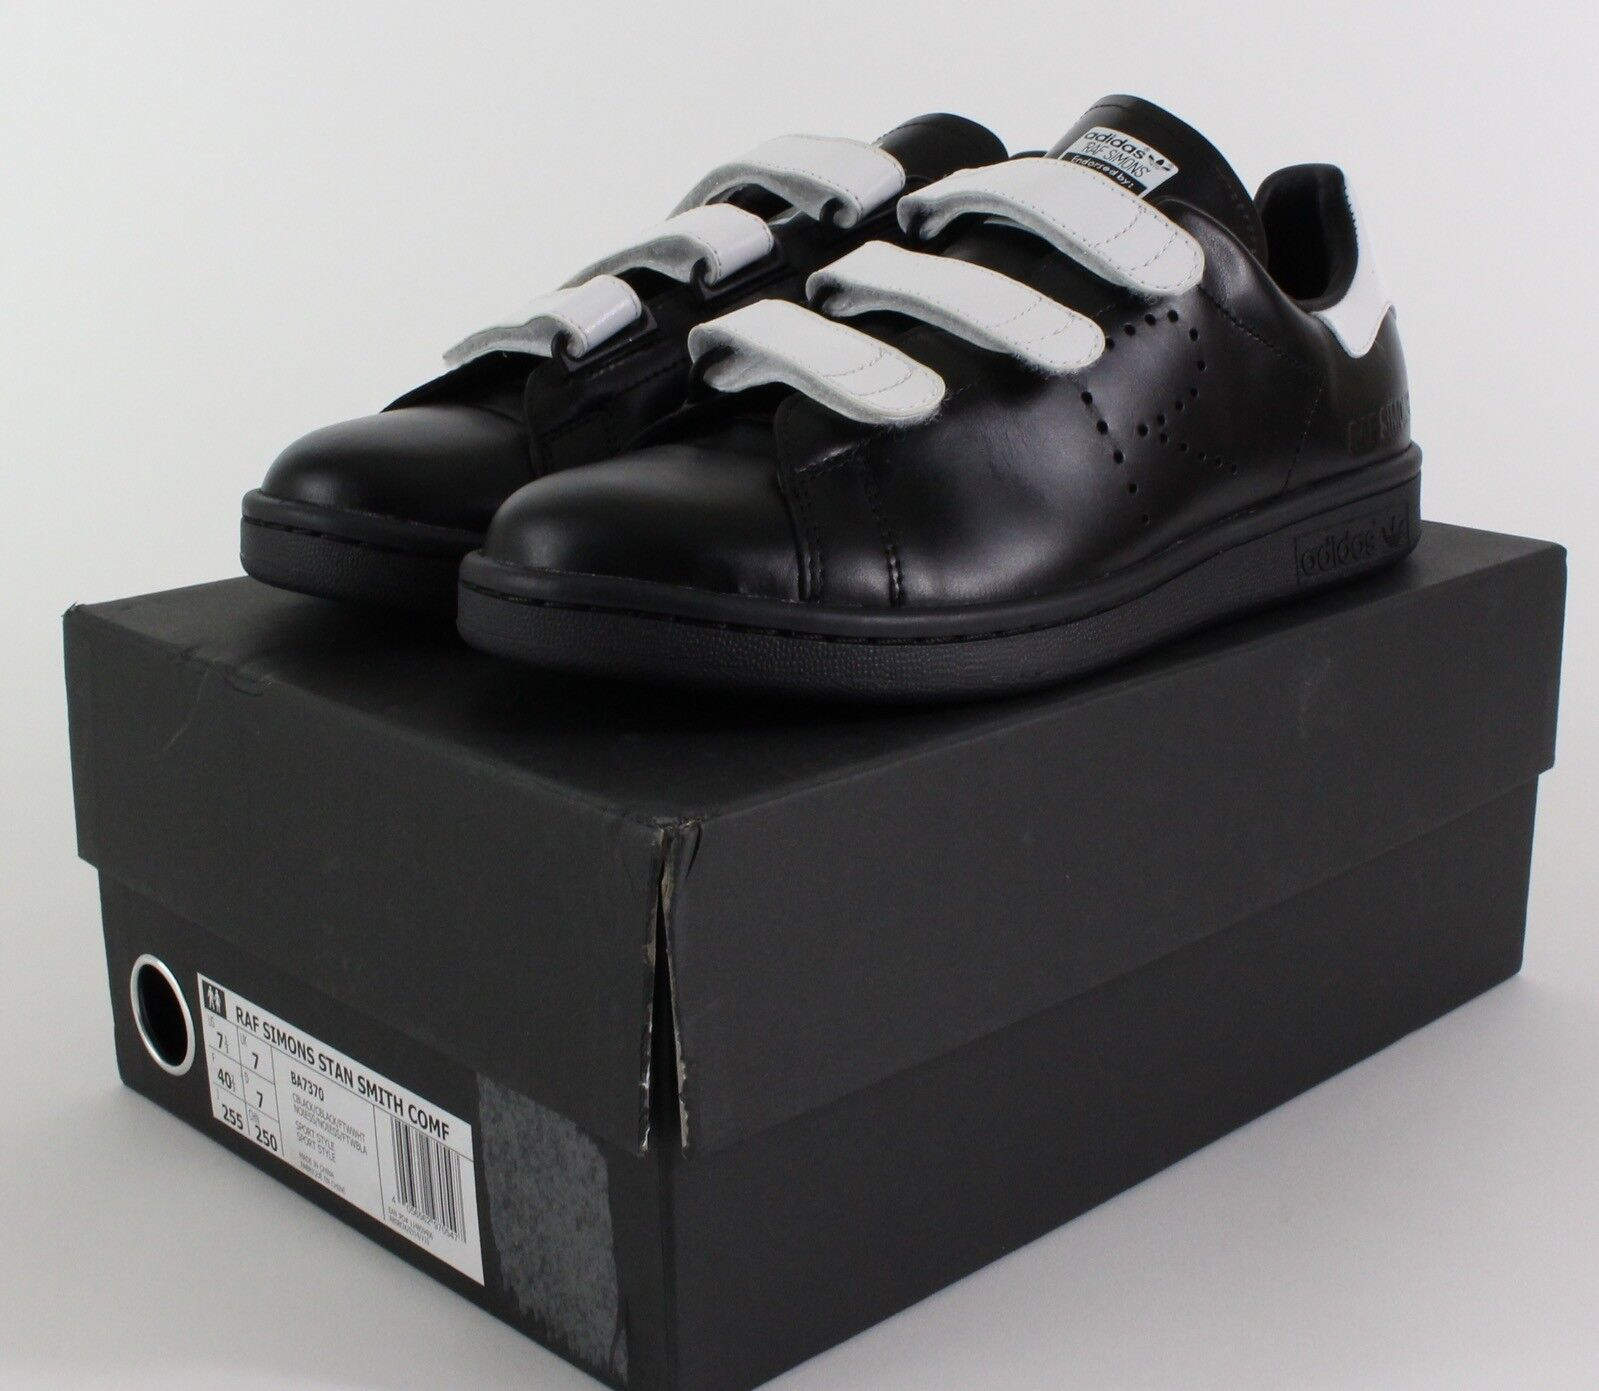 raf simons, stan smith, adidas confort confort adidas confort adidas en noir / blanc 189159